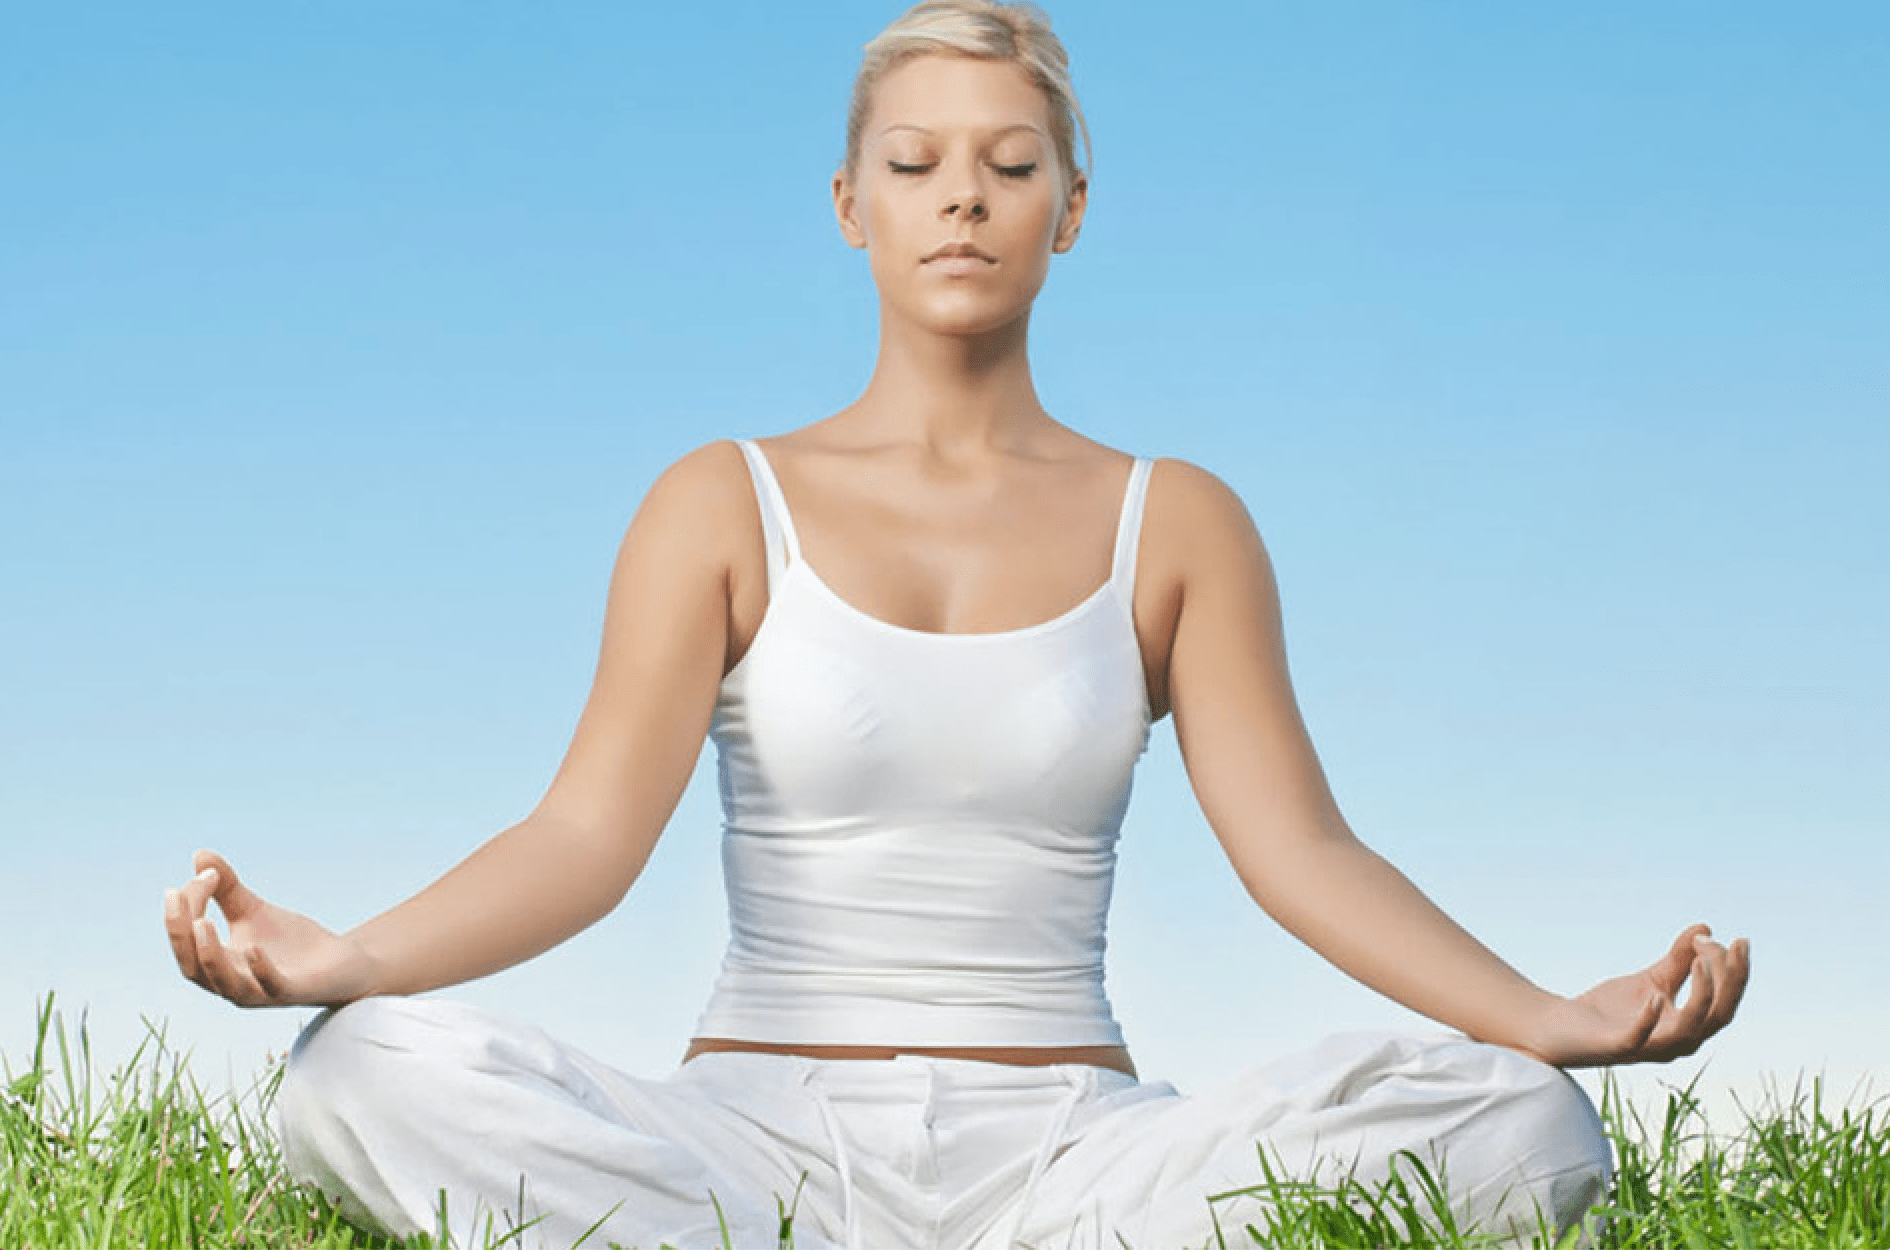 Woman practicing self hypnosis in nature